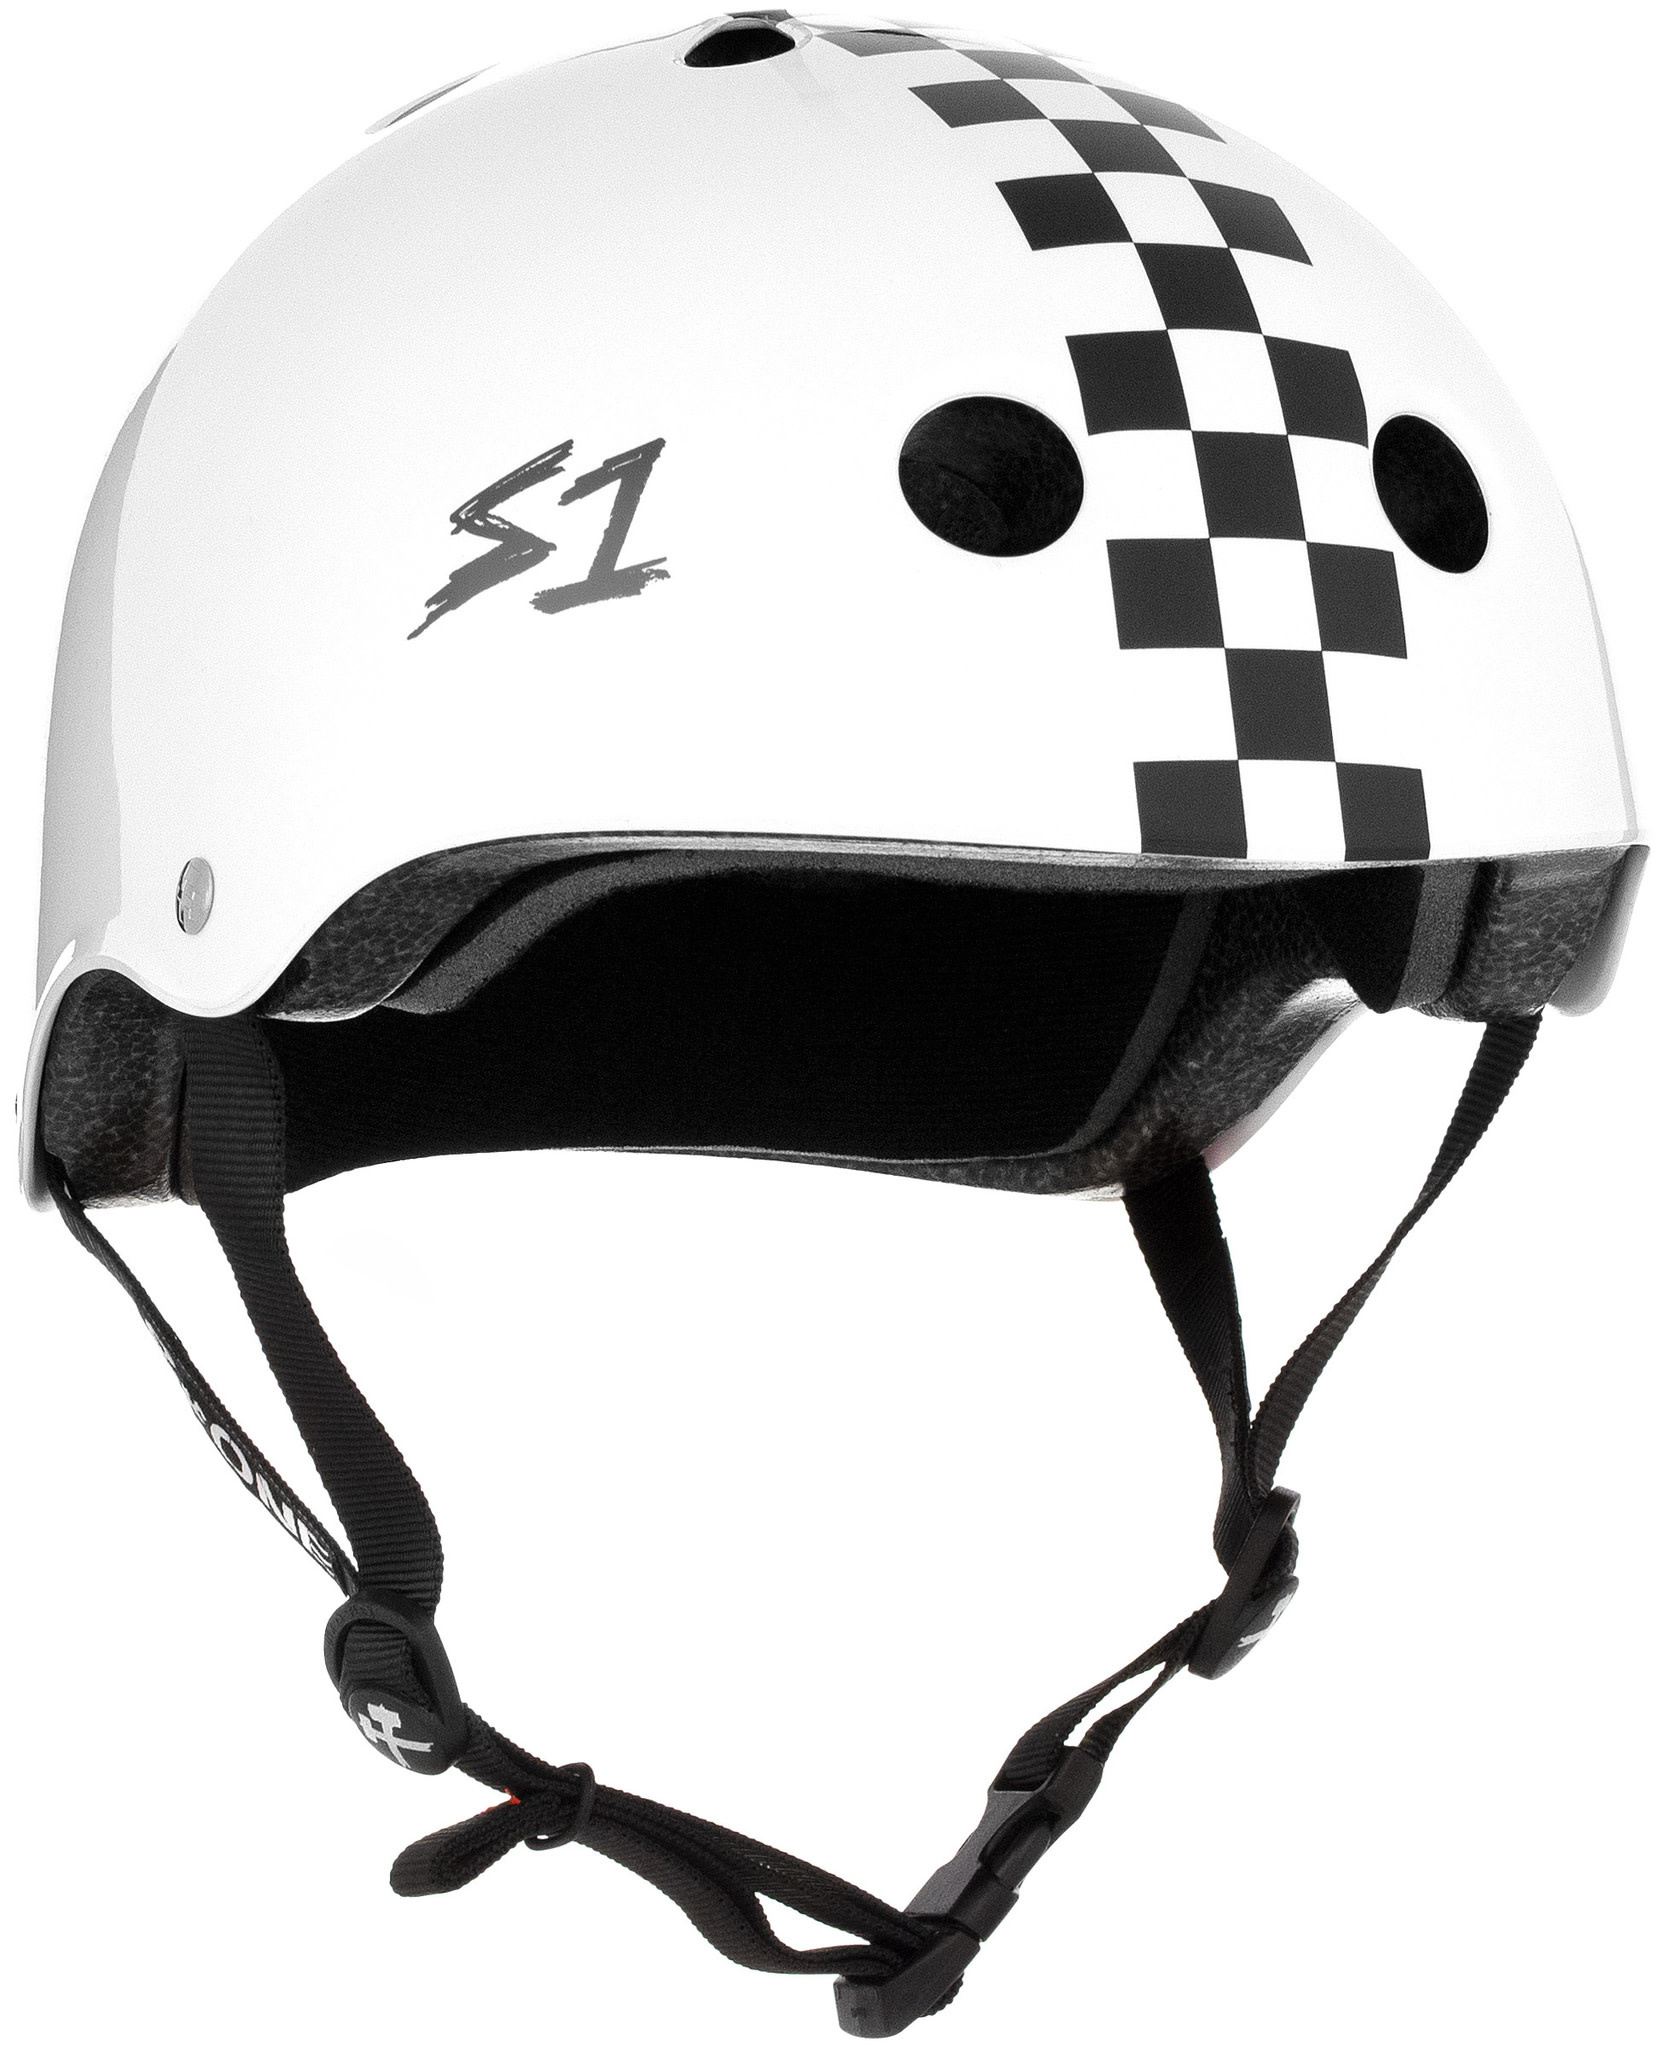 S1 S1 LIFER HELMET - WHITE GLOSS WITH CHECKERS